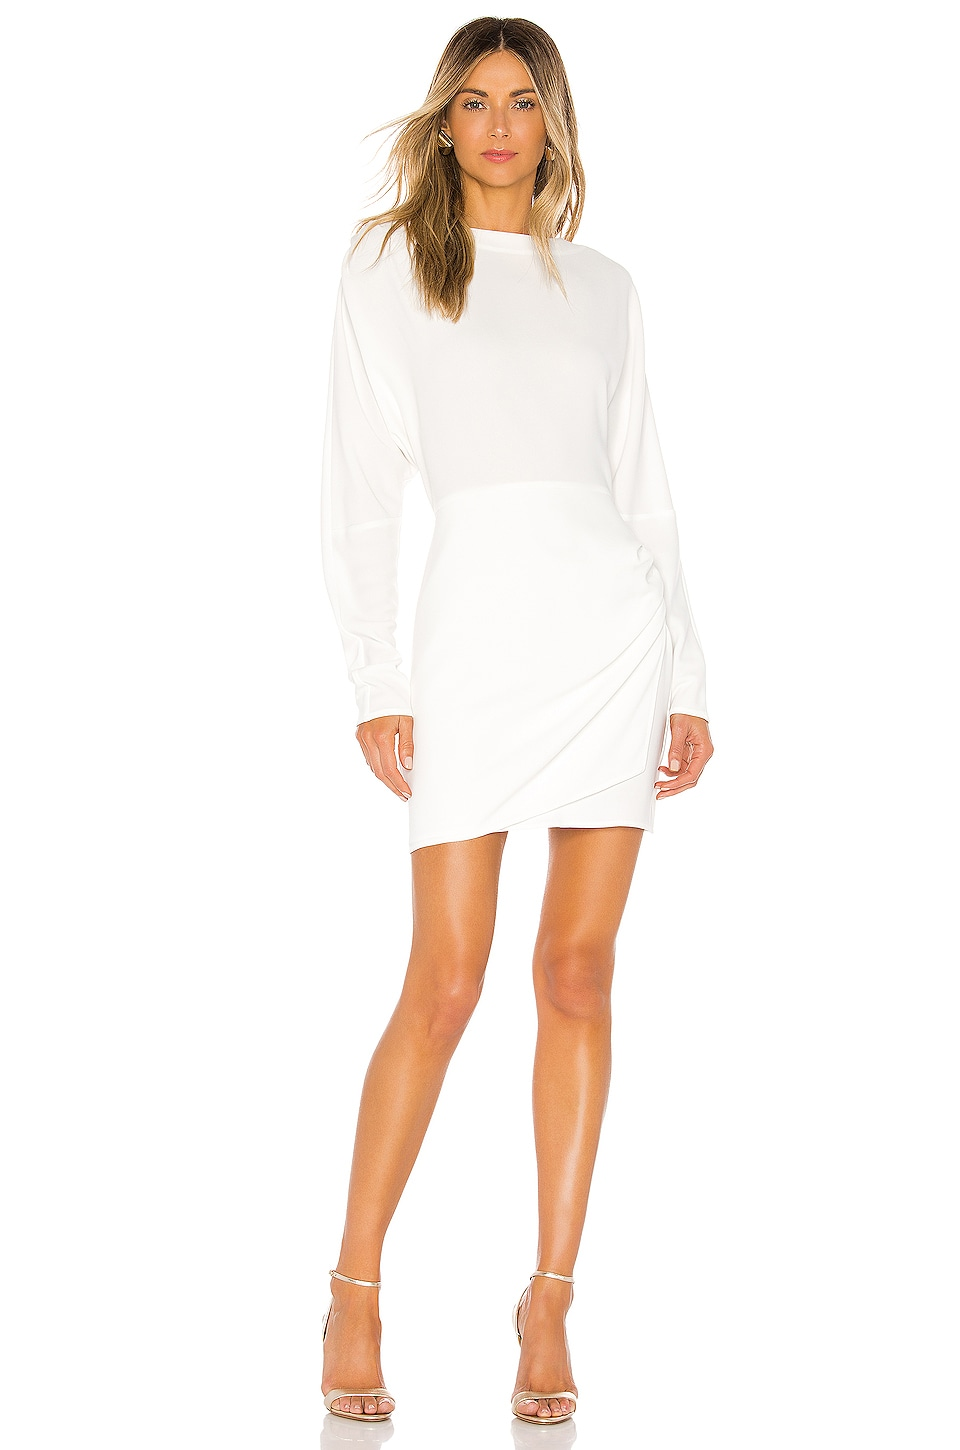 A.L.C. Greer Dress in White